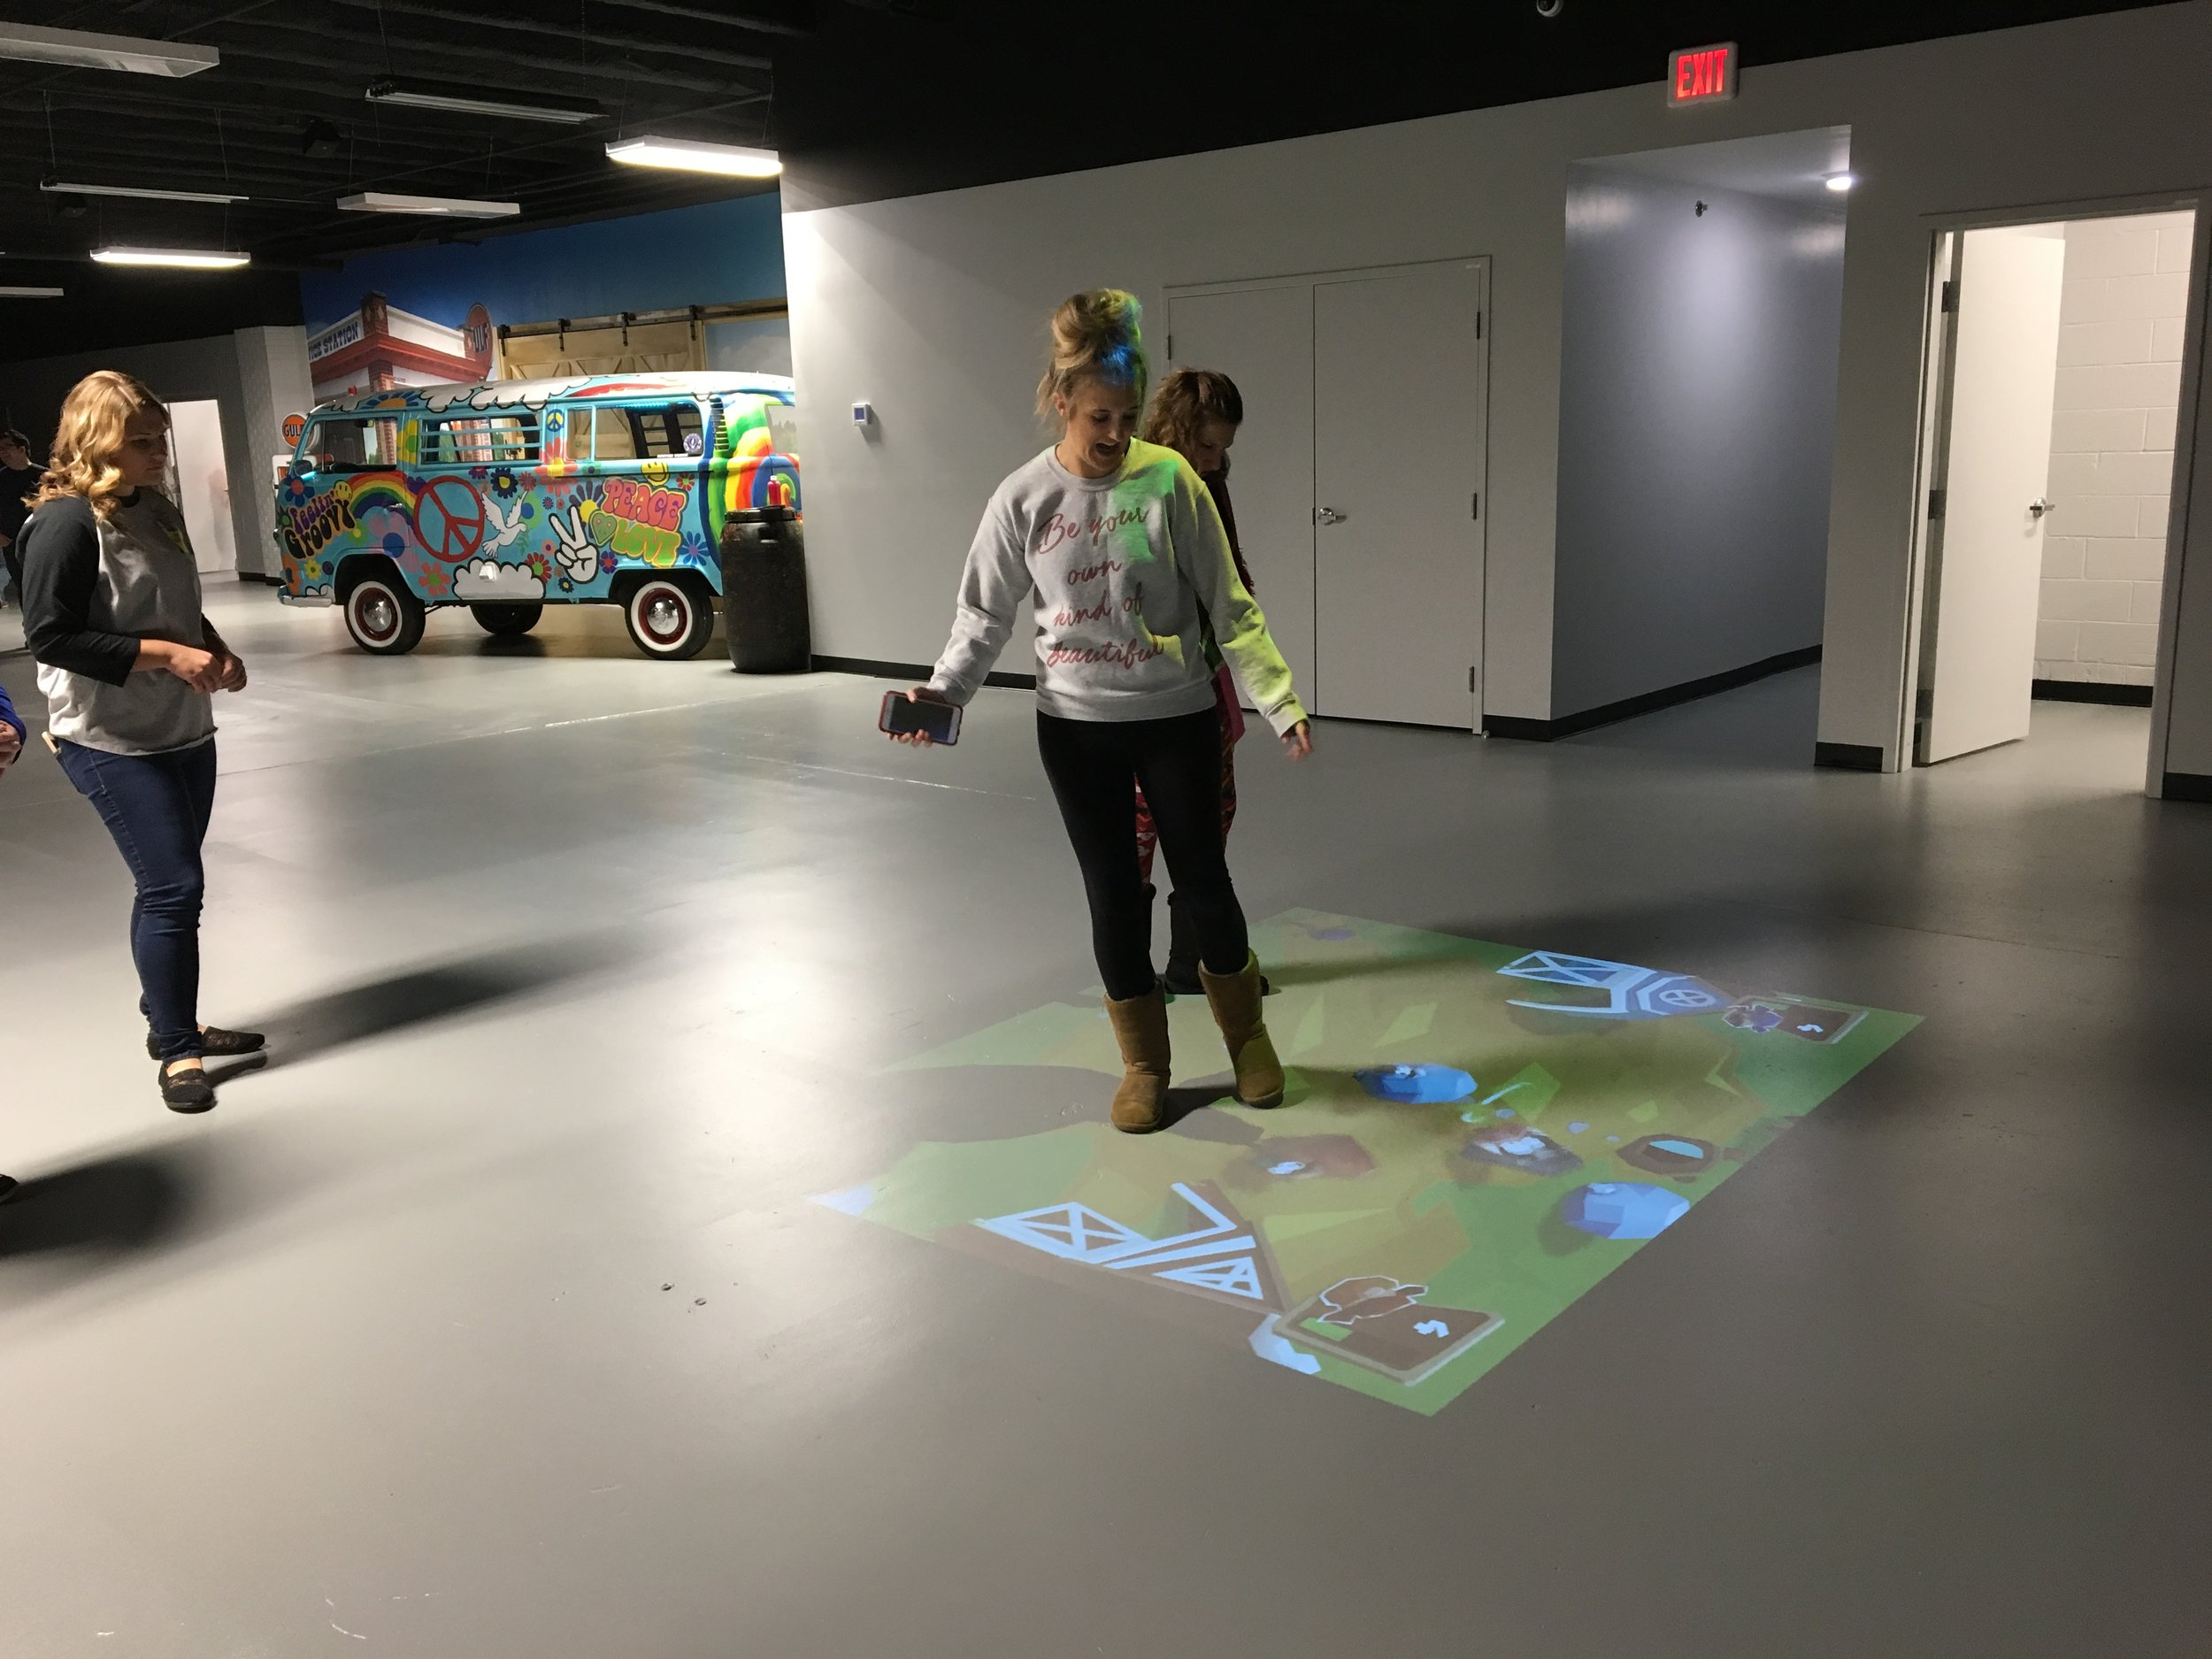 Beam Technology - Interactive games projected on the floor.